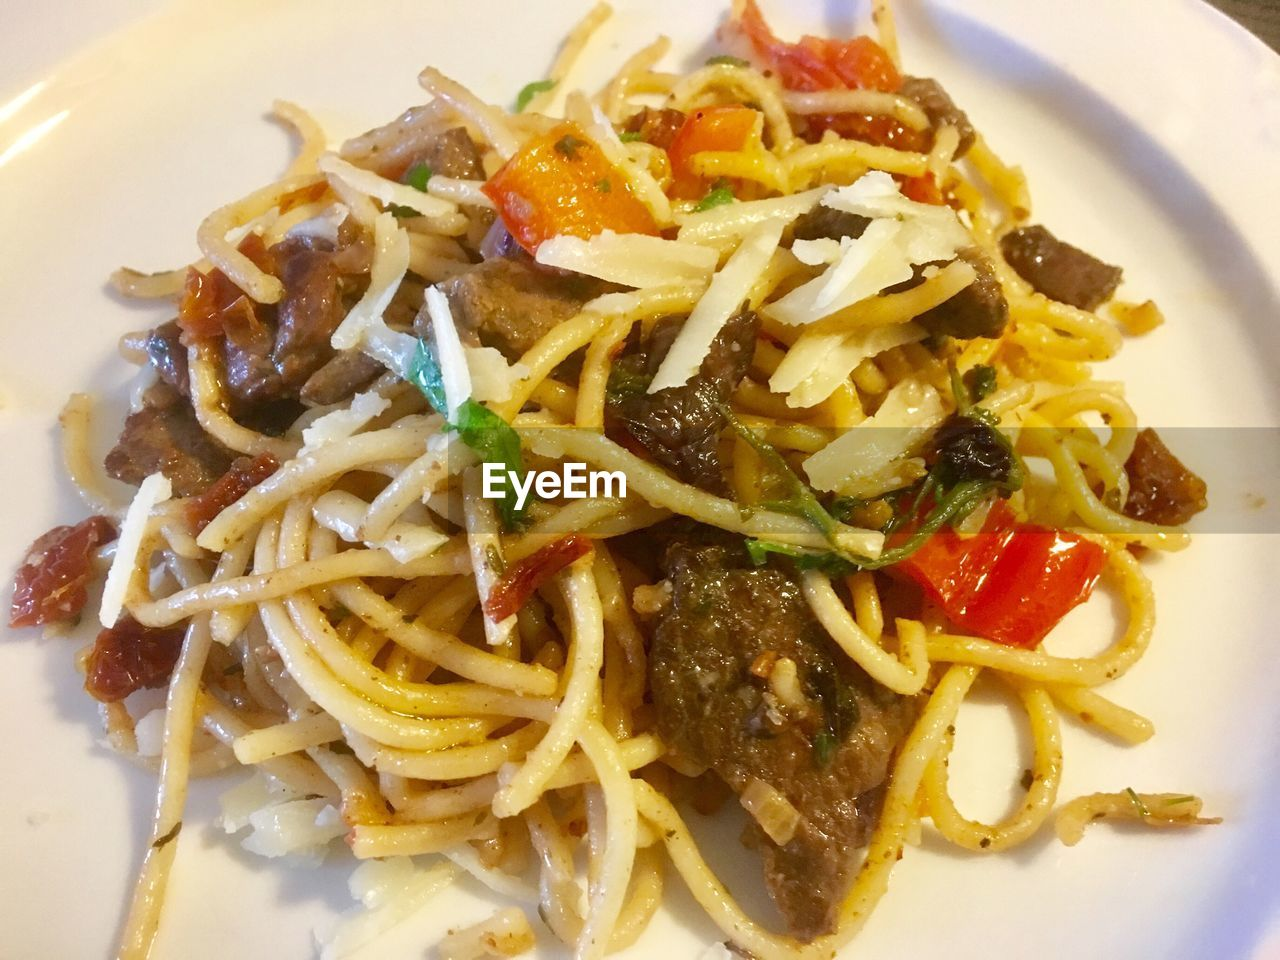 pasta, ready-to-eat, food and drink, food, plate, freshness, serving size, italian food, noodles, meal, healthy eating, close-up, spaghetti, no people, indoors, day